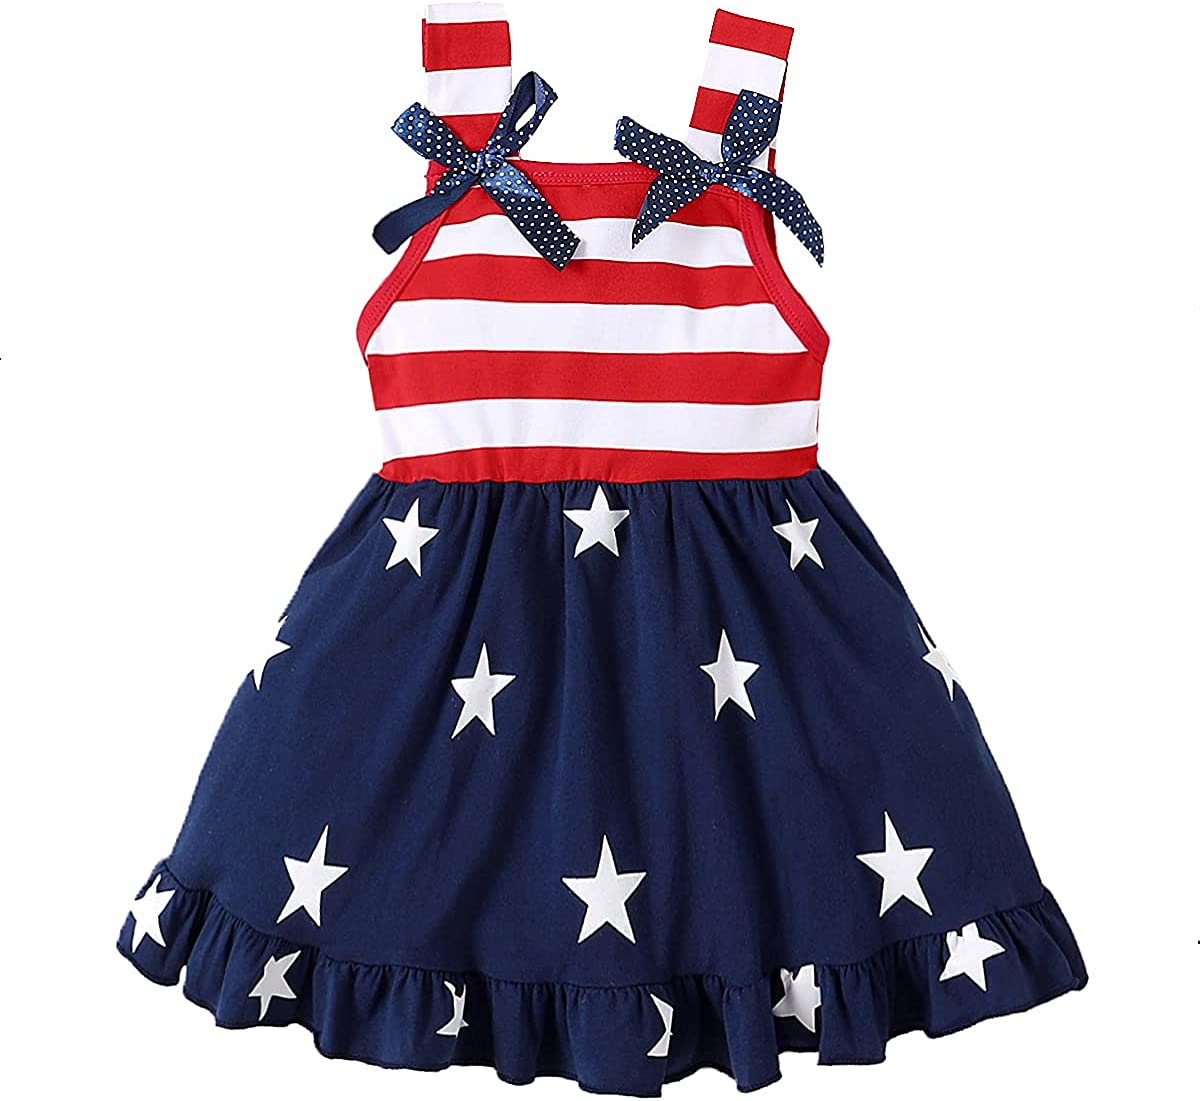 MagicPark Toddler Topics on TV Kids Baby Girls Summer 4th Outfit Amer of July NEW before selling